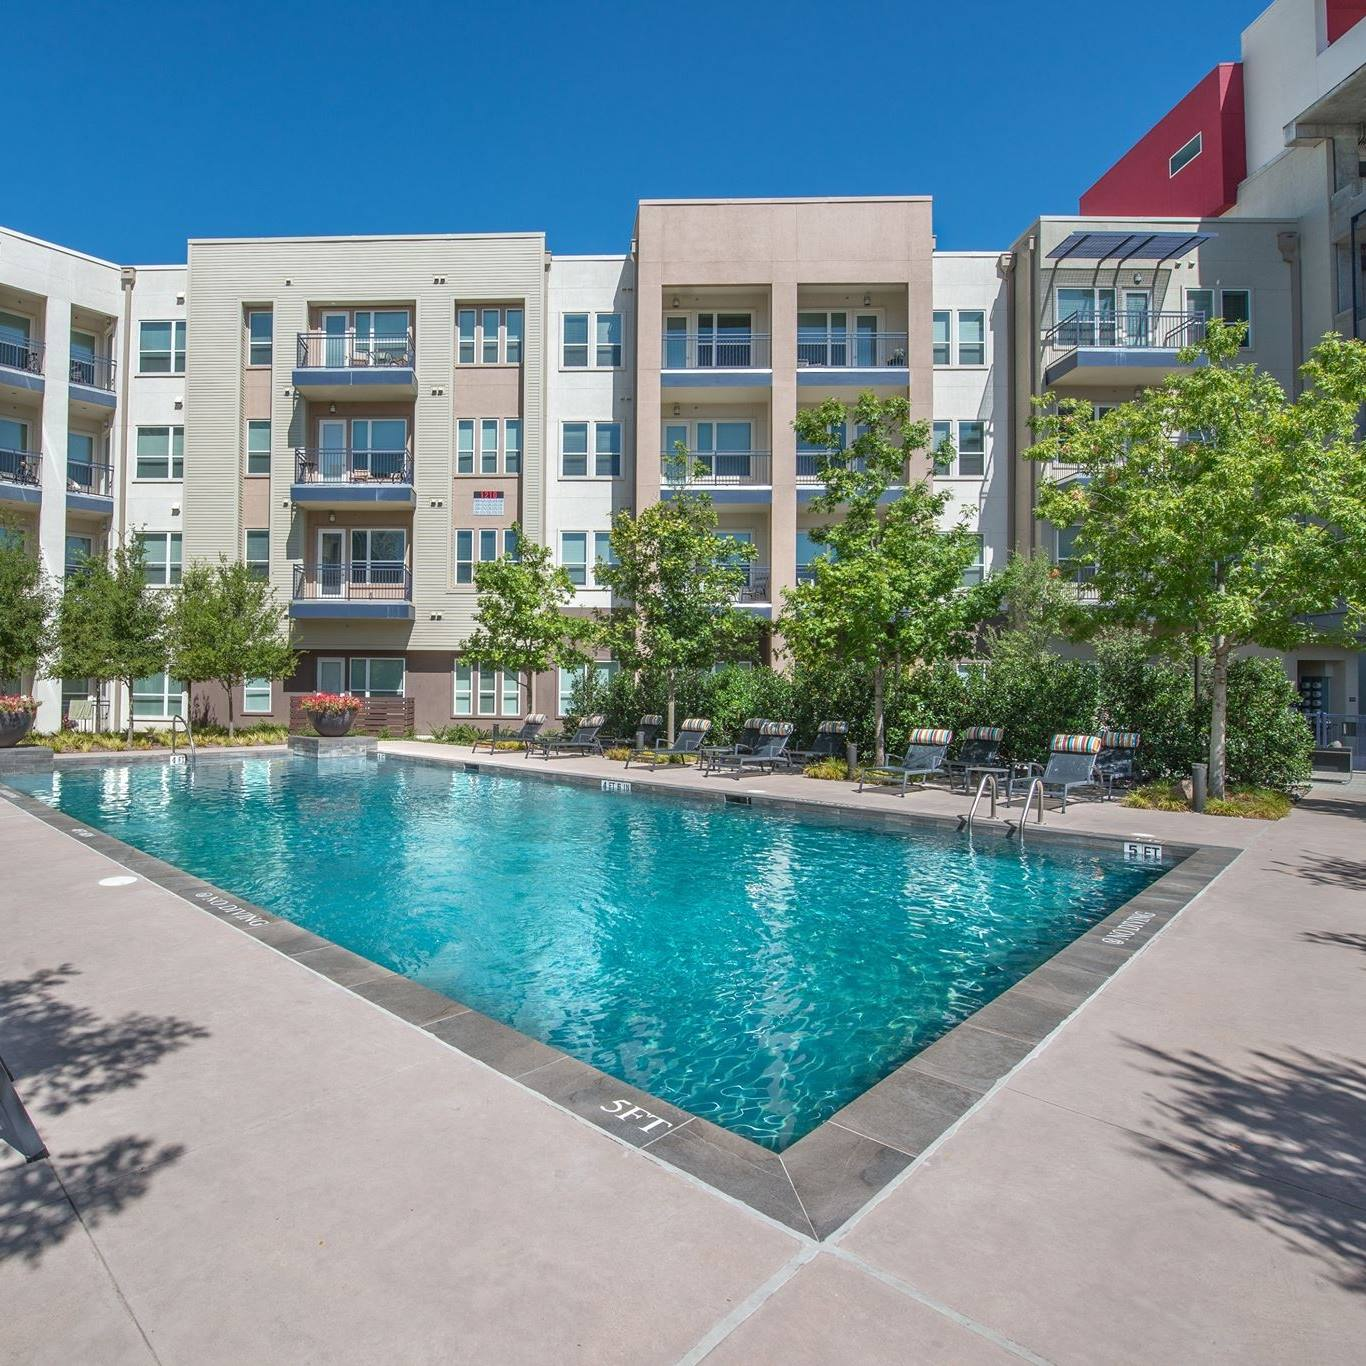 Dallas Area Apartments: South Side Flats Apartments